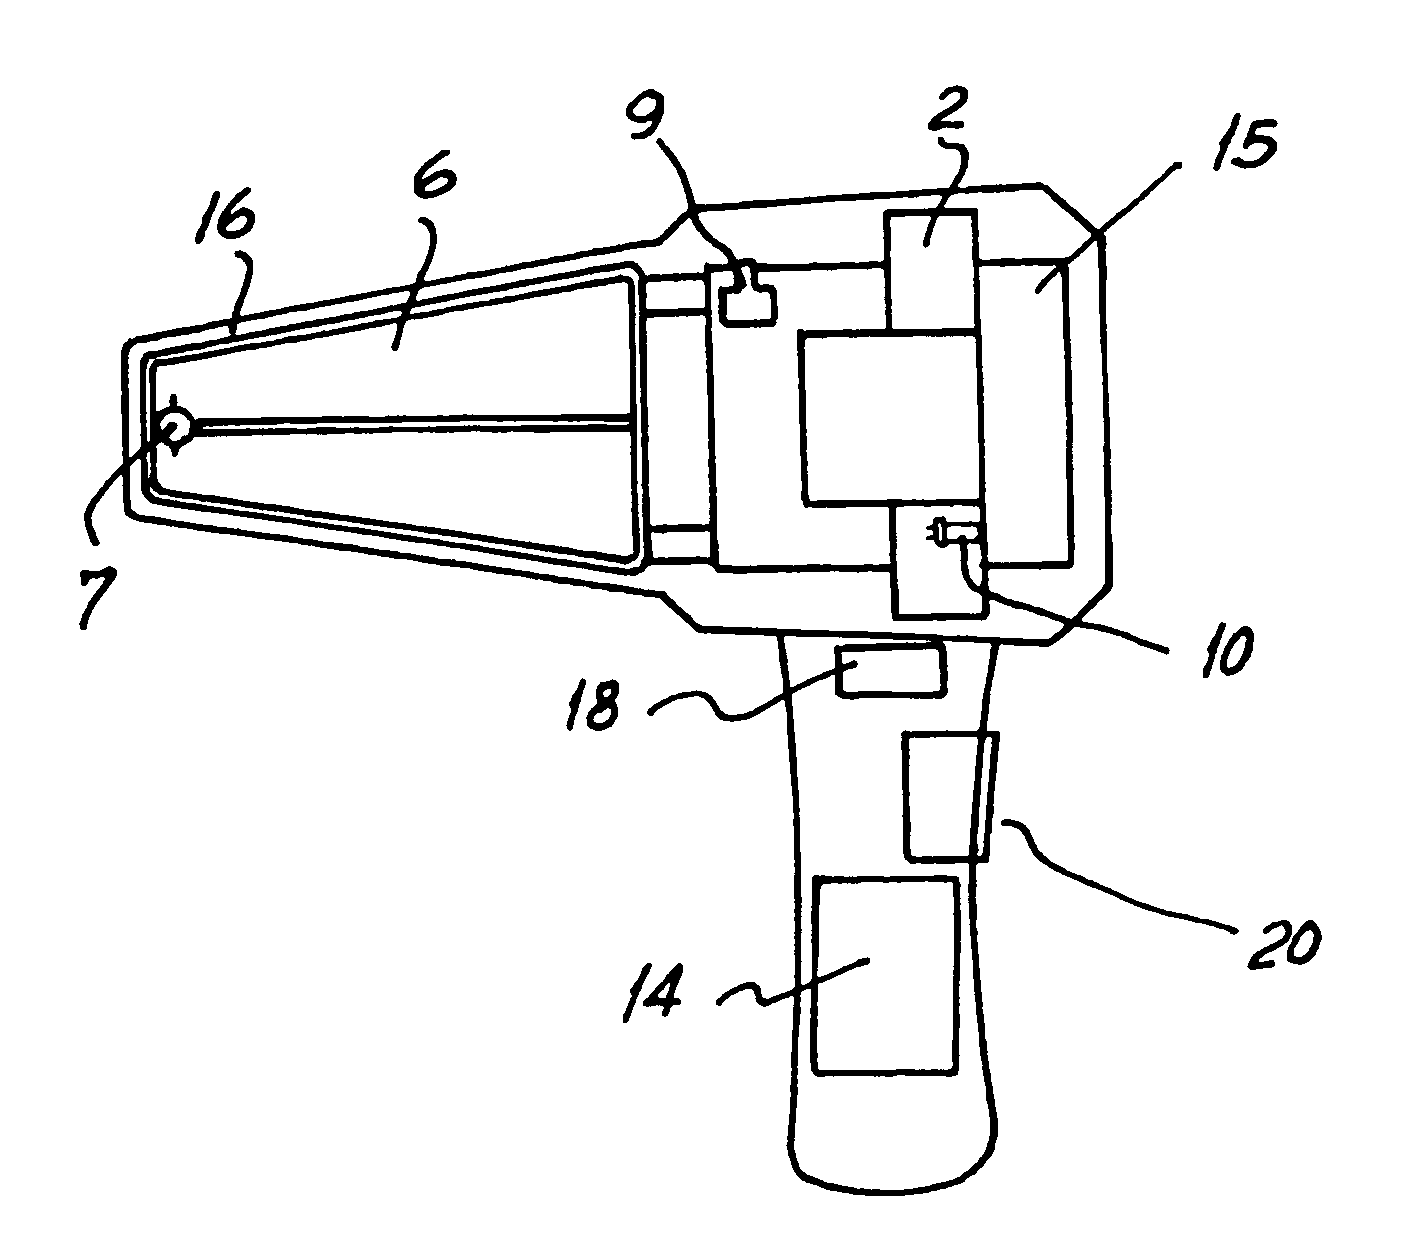 Patent Us7123823 Programmable Manual Hair Dryer With Multiple And Schematic Wiring Diagram Drawing